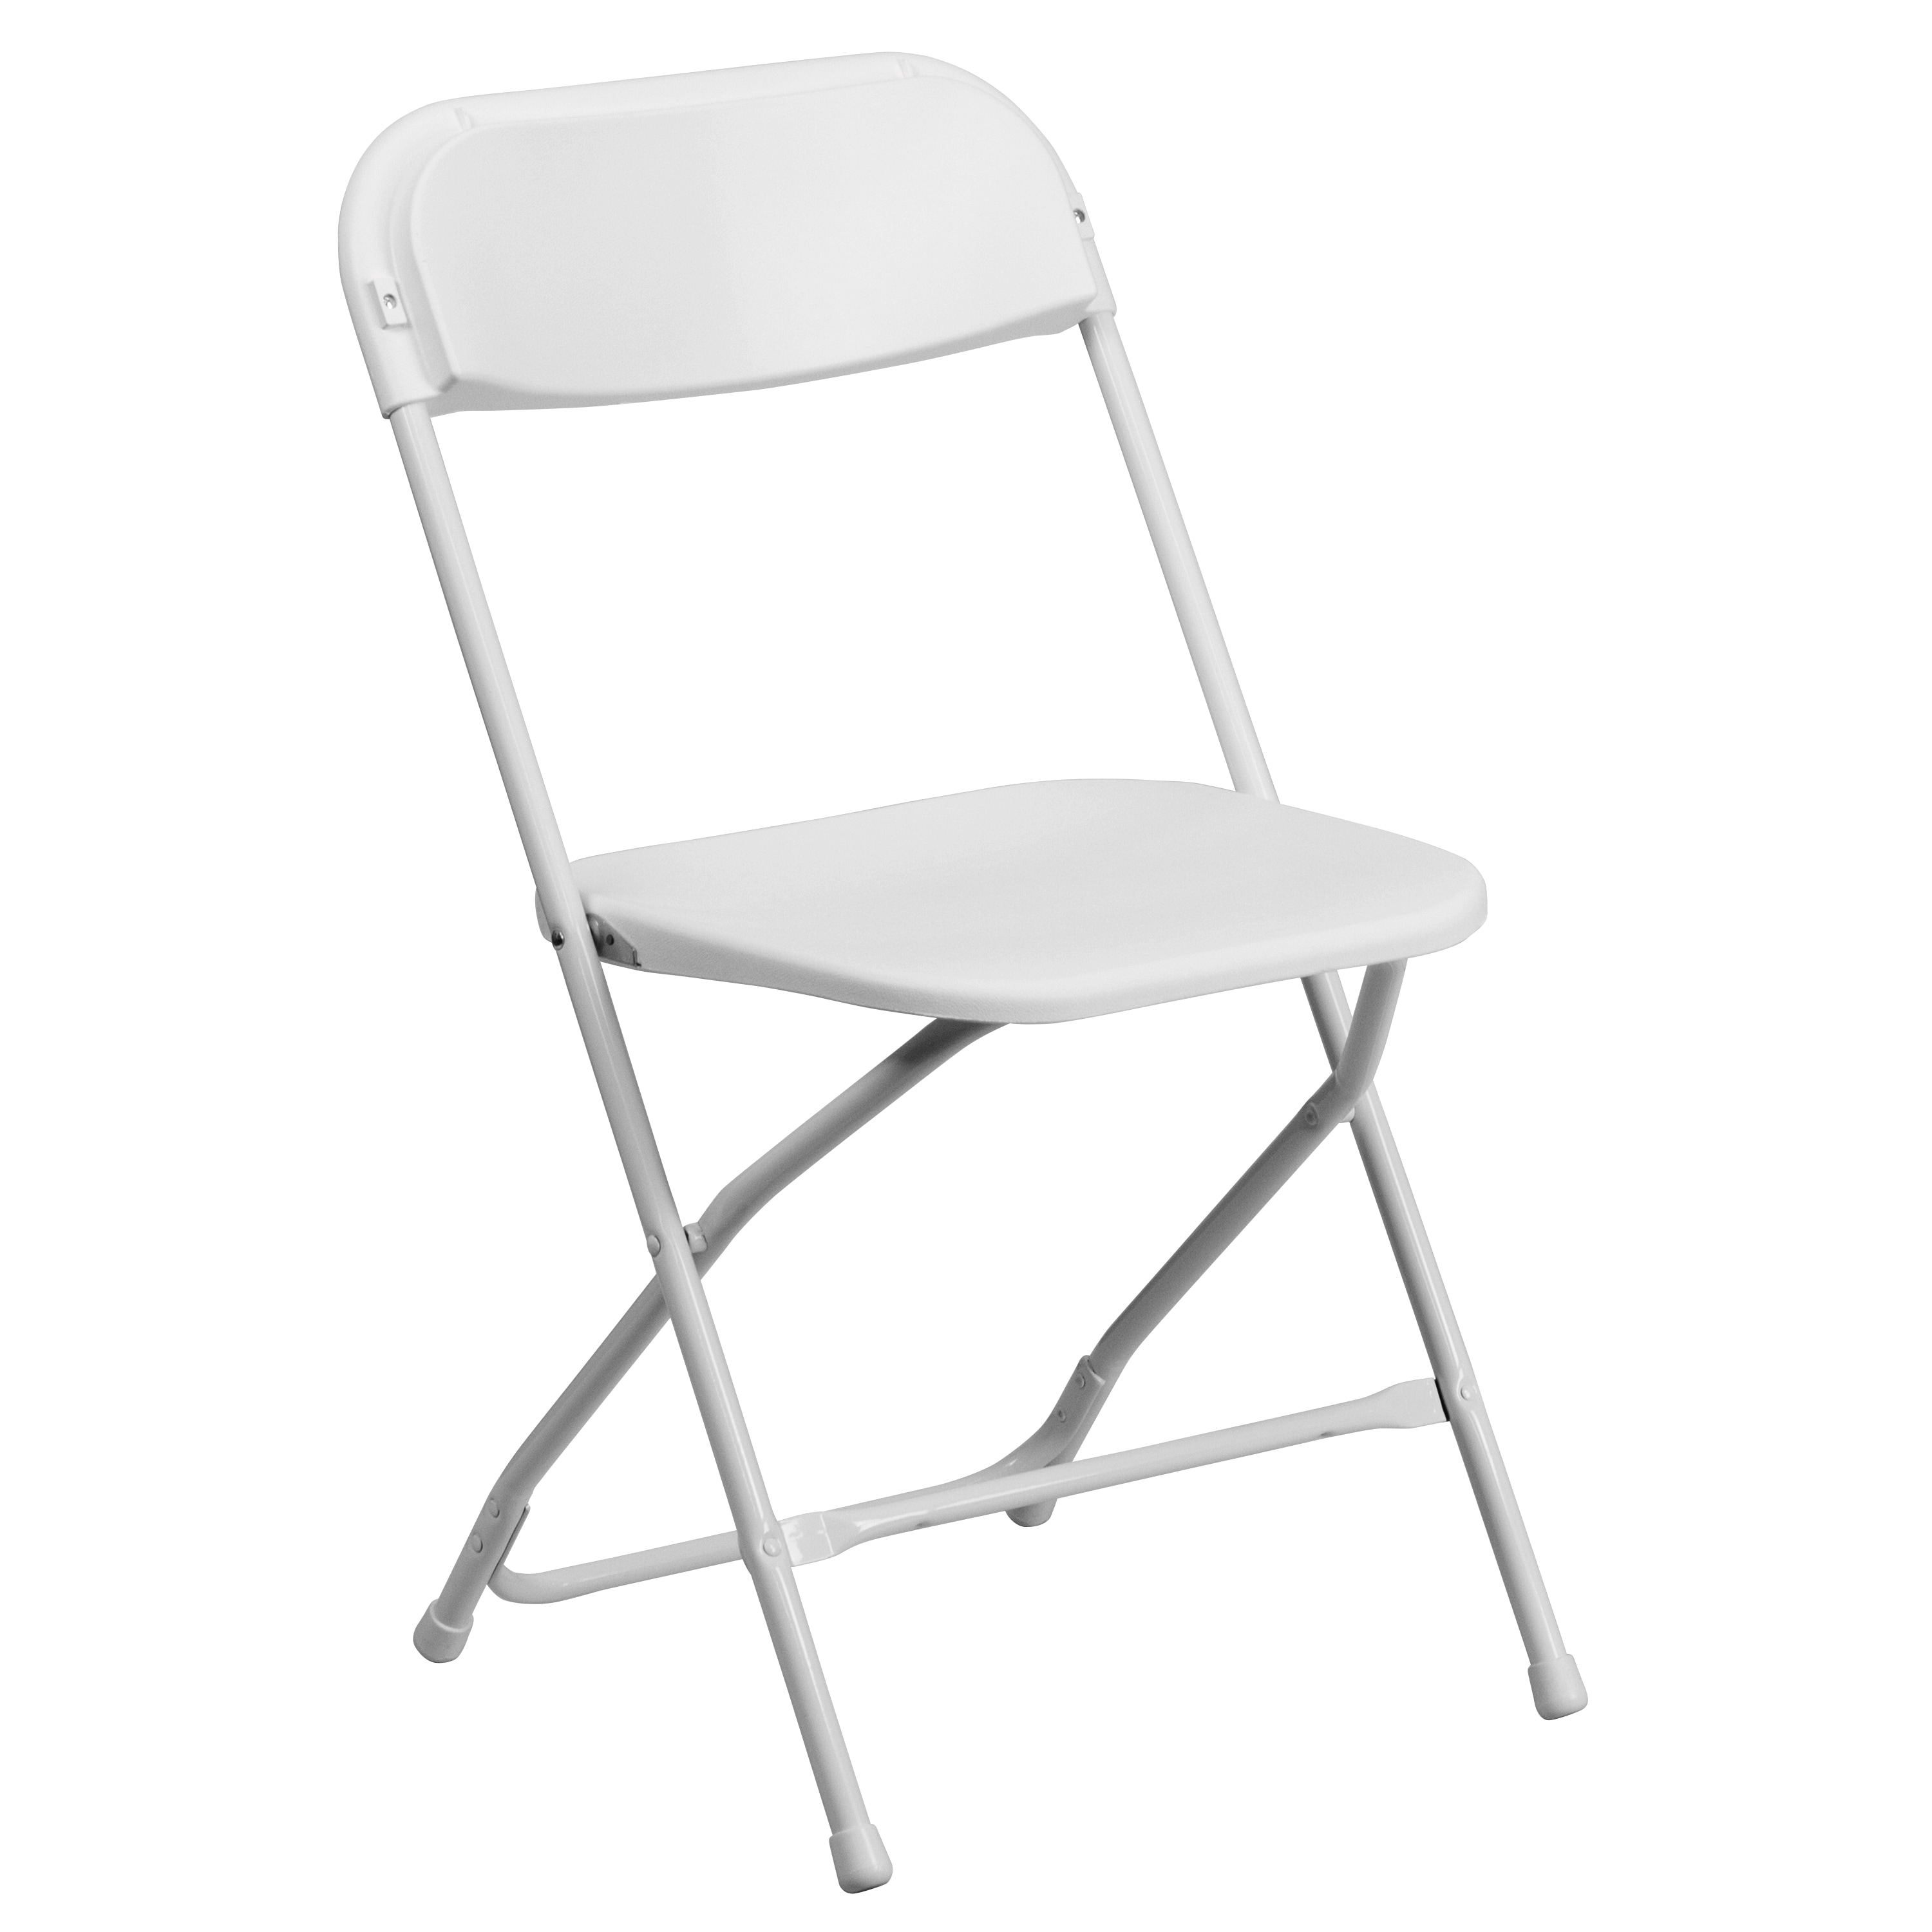 folding lawn chairs ontario kitchen table and walmart a line furniture com product image white durable